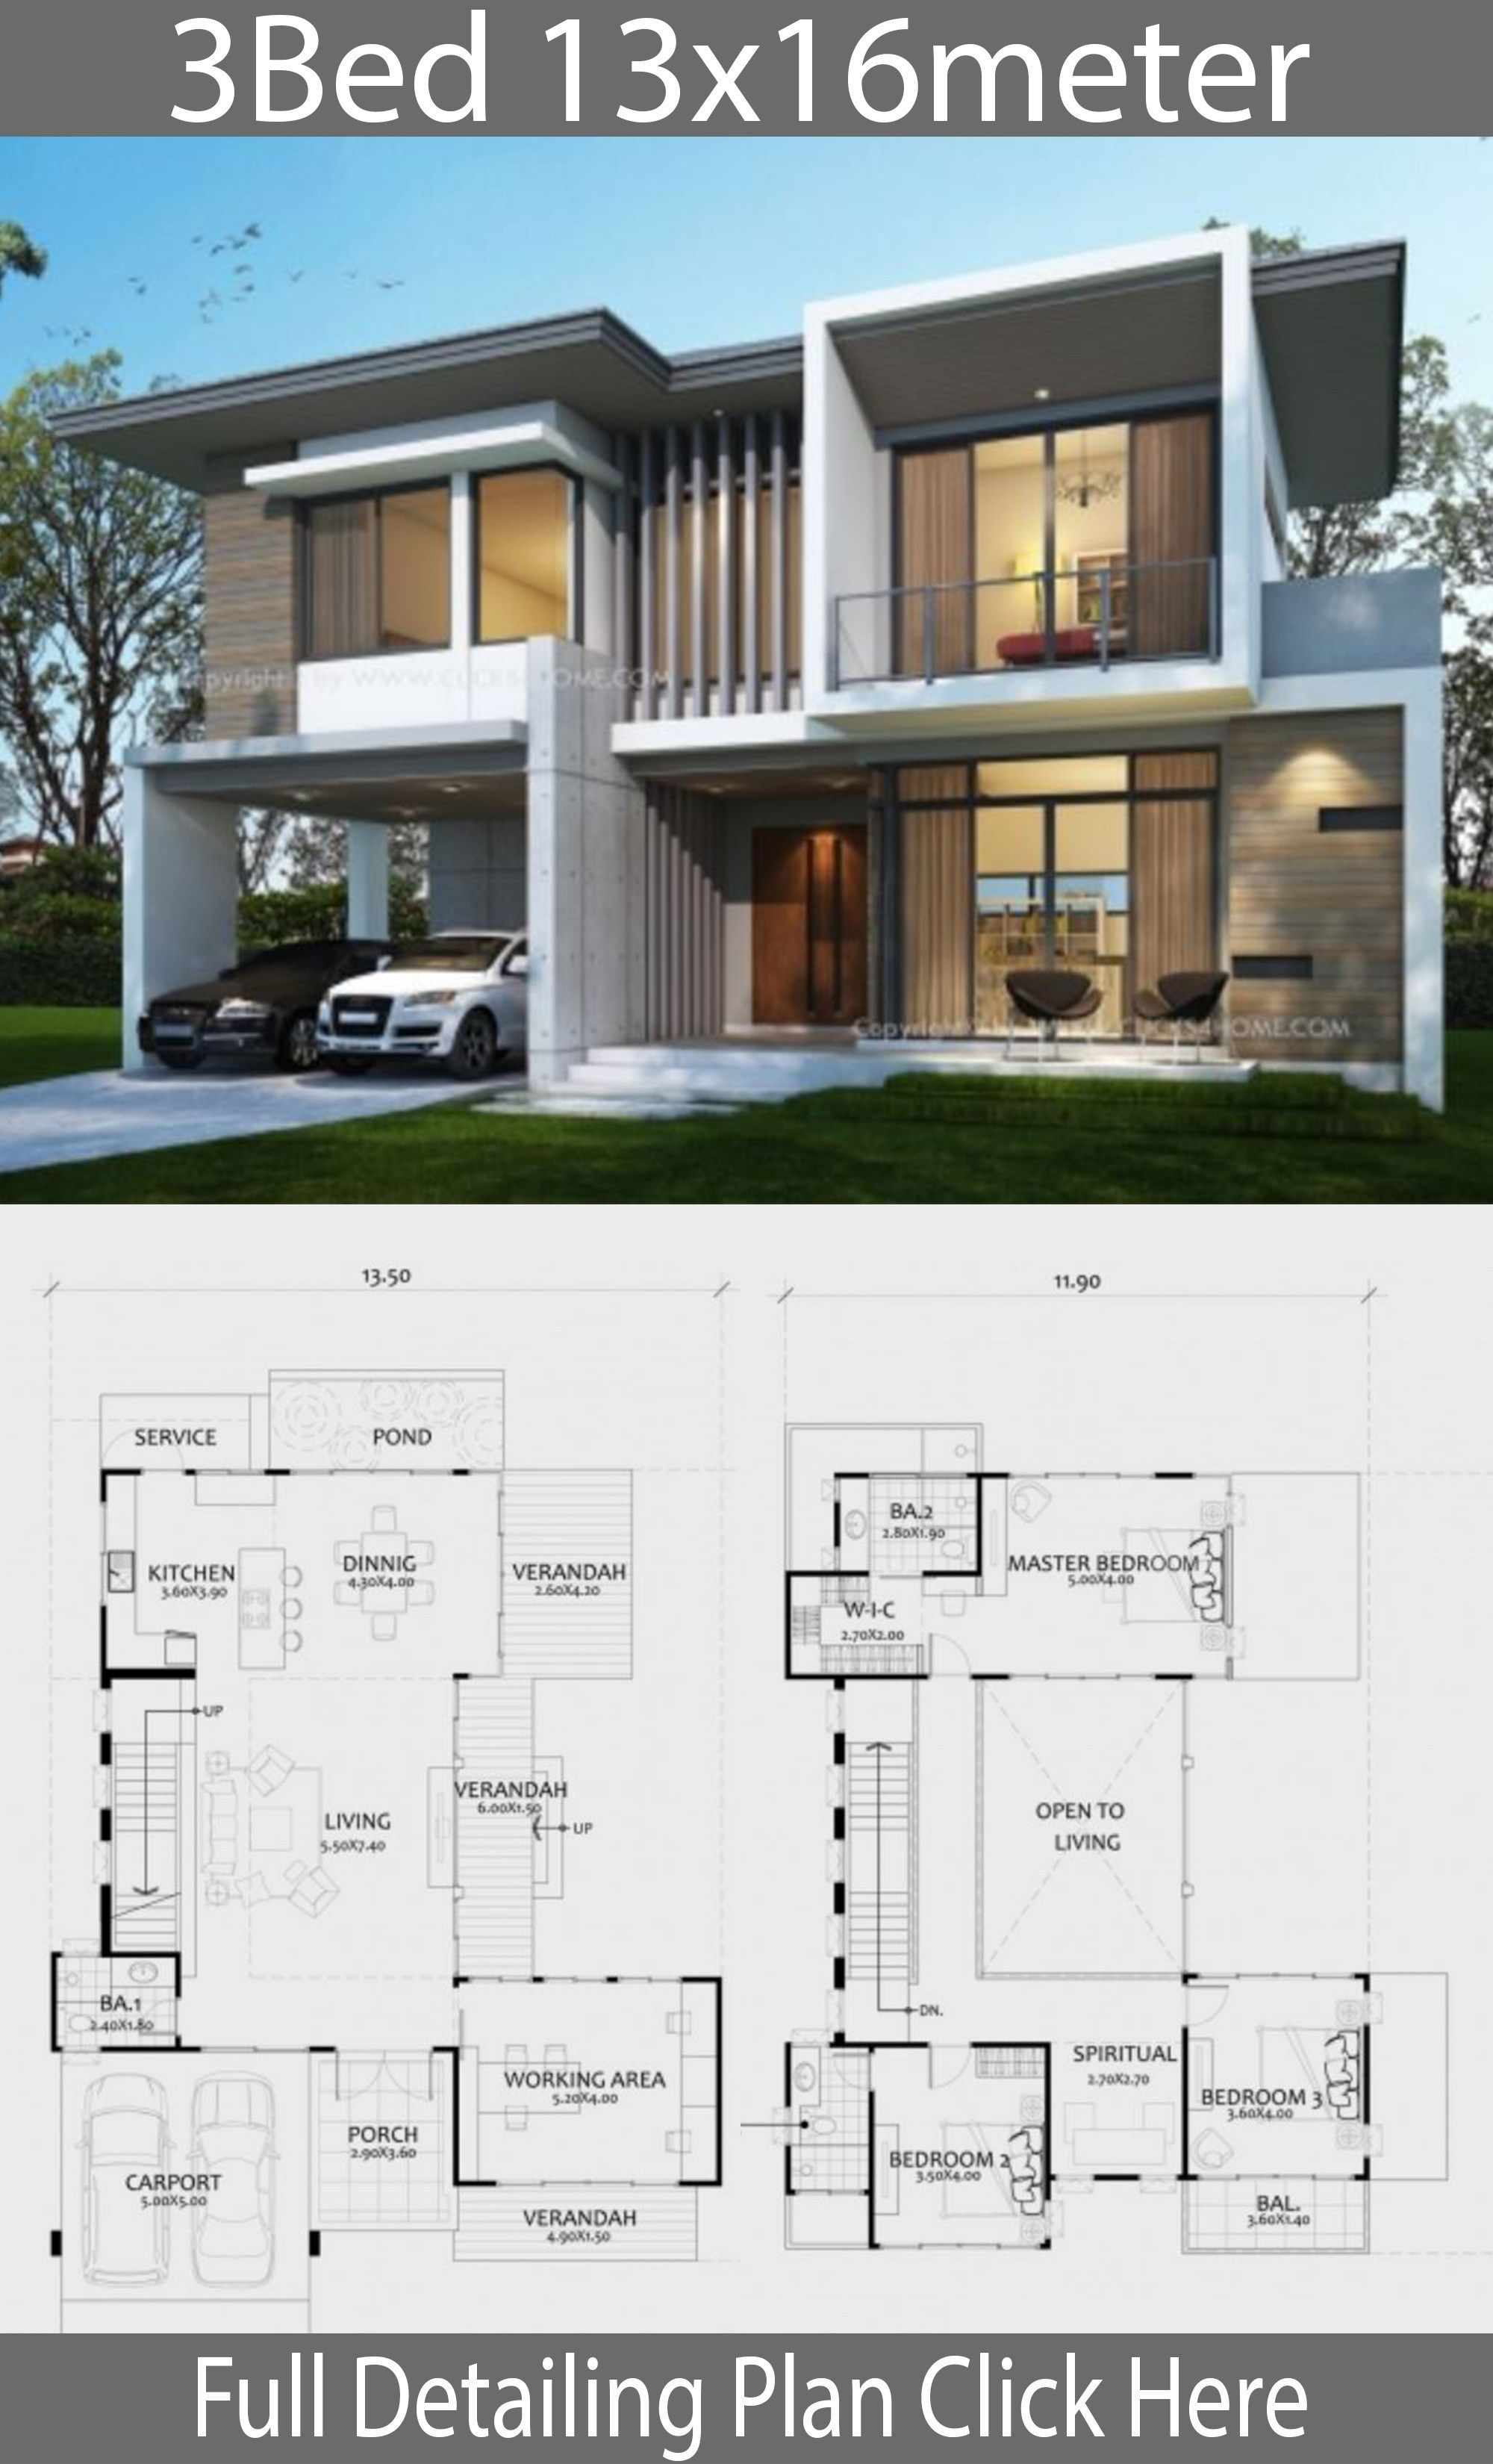 Home Design Plan 13x16m With 3 Bedrooms Home Design With Plan Beautiful House Plans Modern House Plans House Designs Exterior